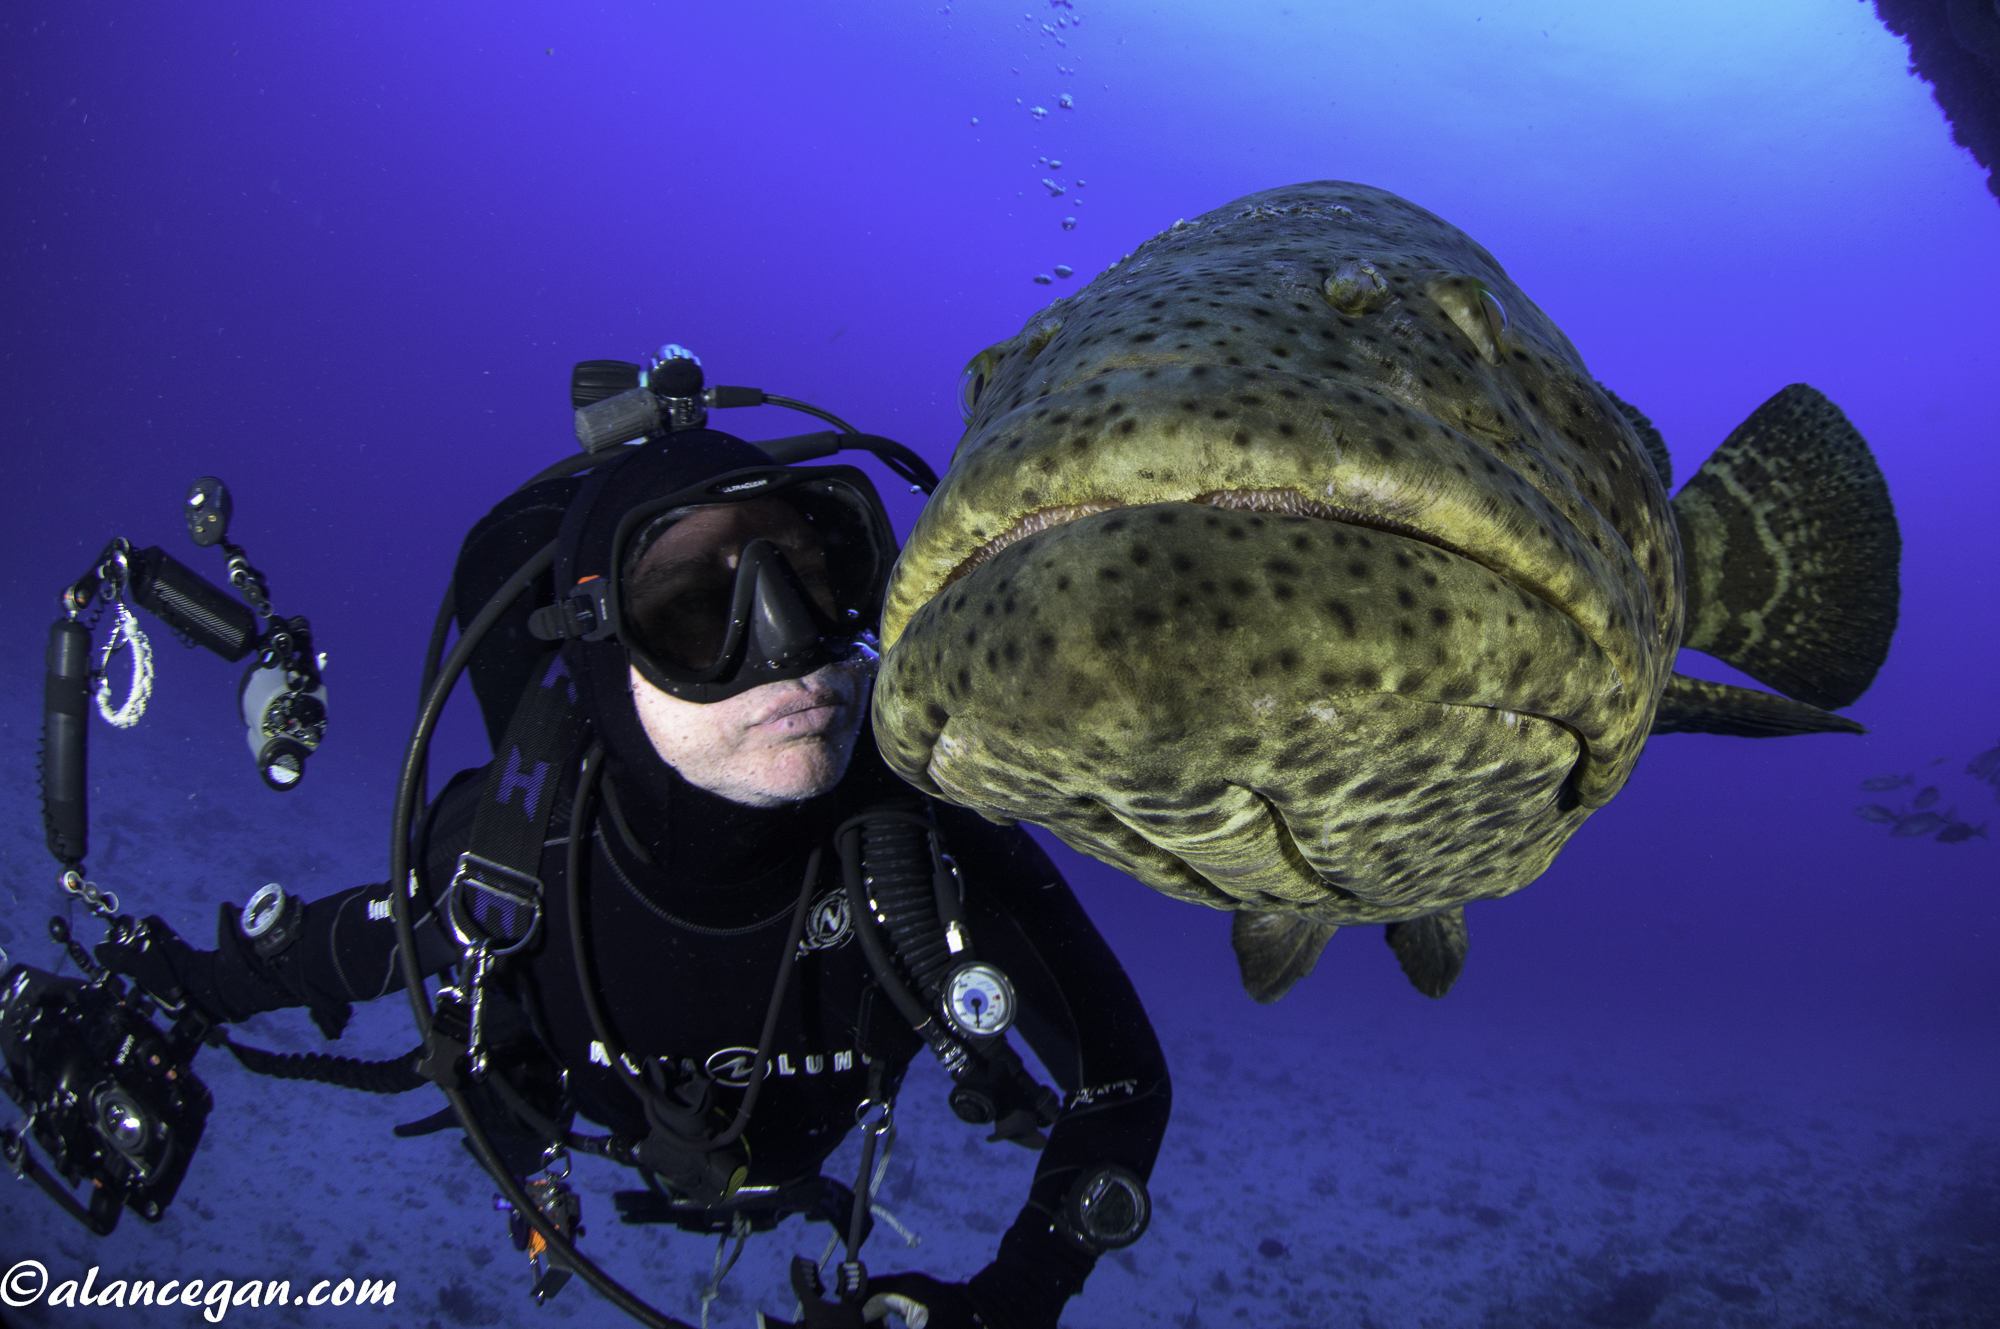 Kissing a Goliath Grouper off Boynton Beach Florida